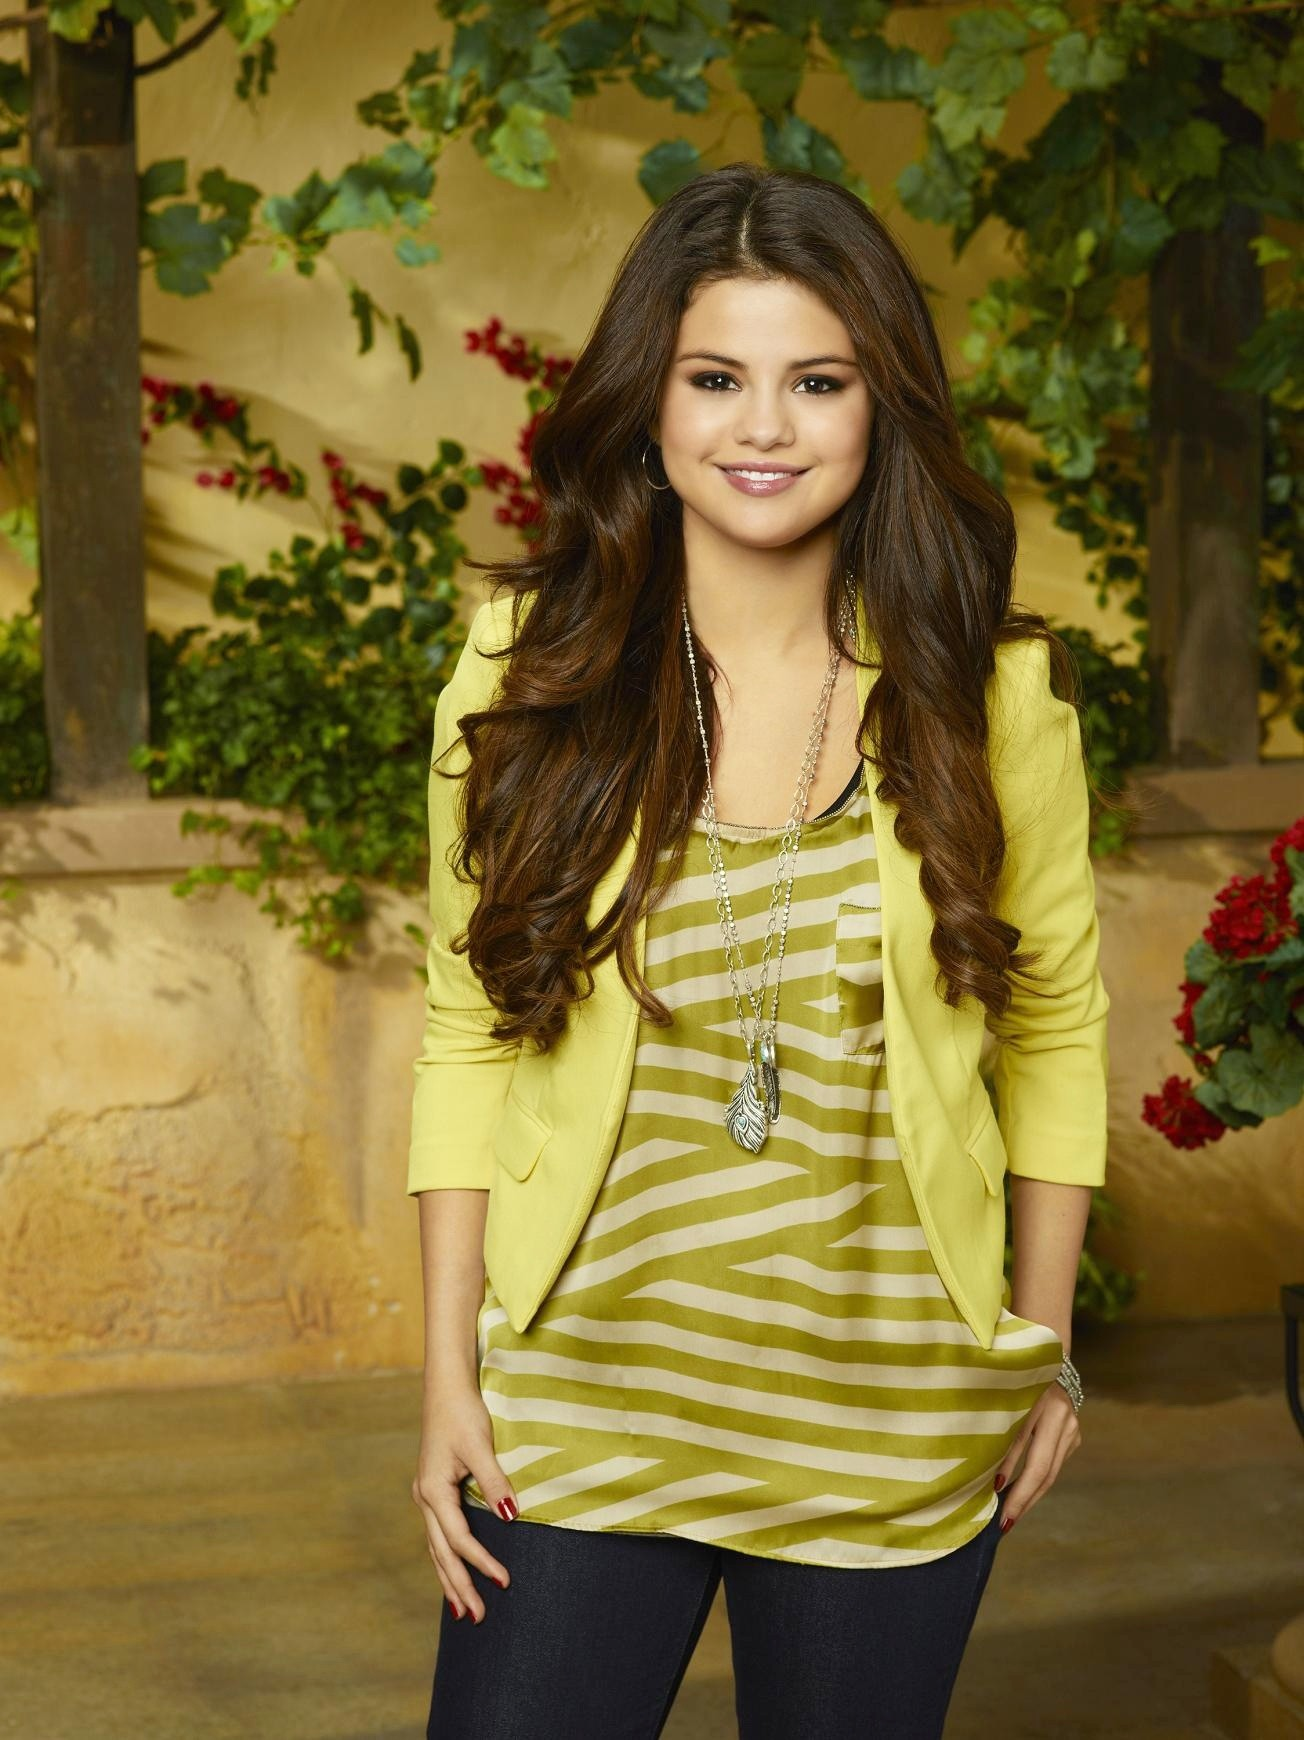 Alex russo wizards of waverly place wiki fandom for The waverly